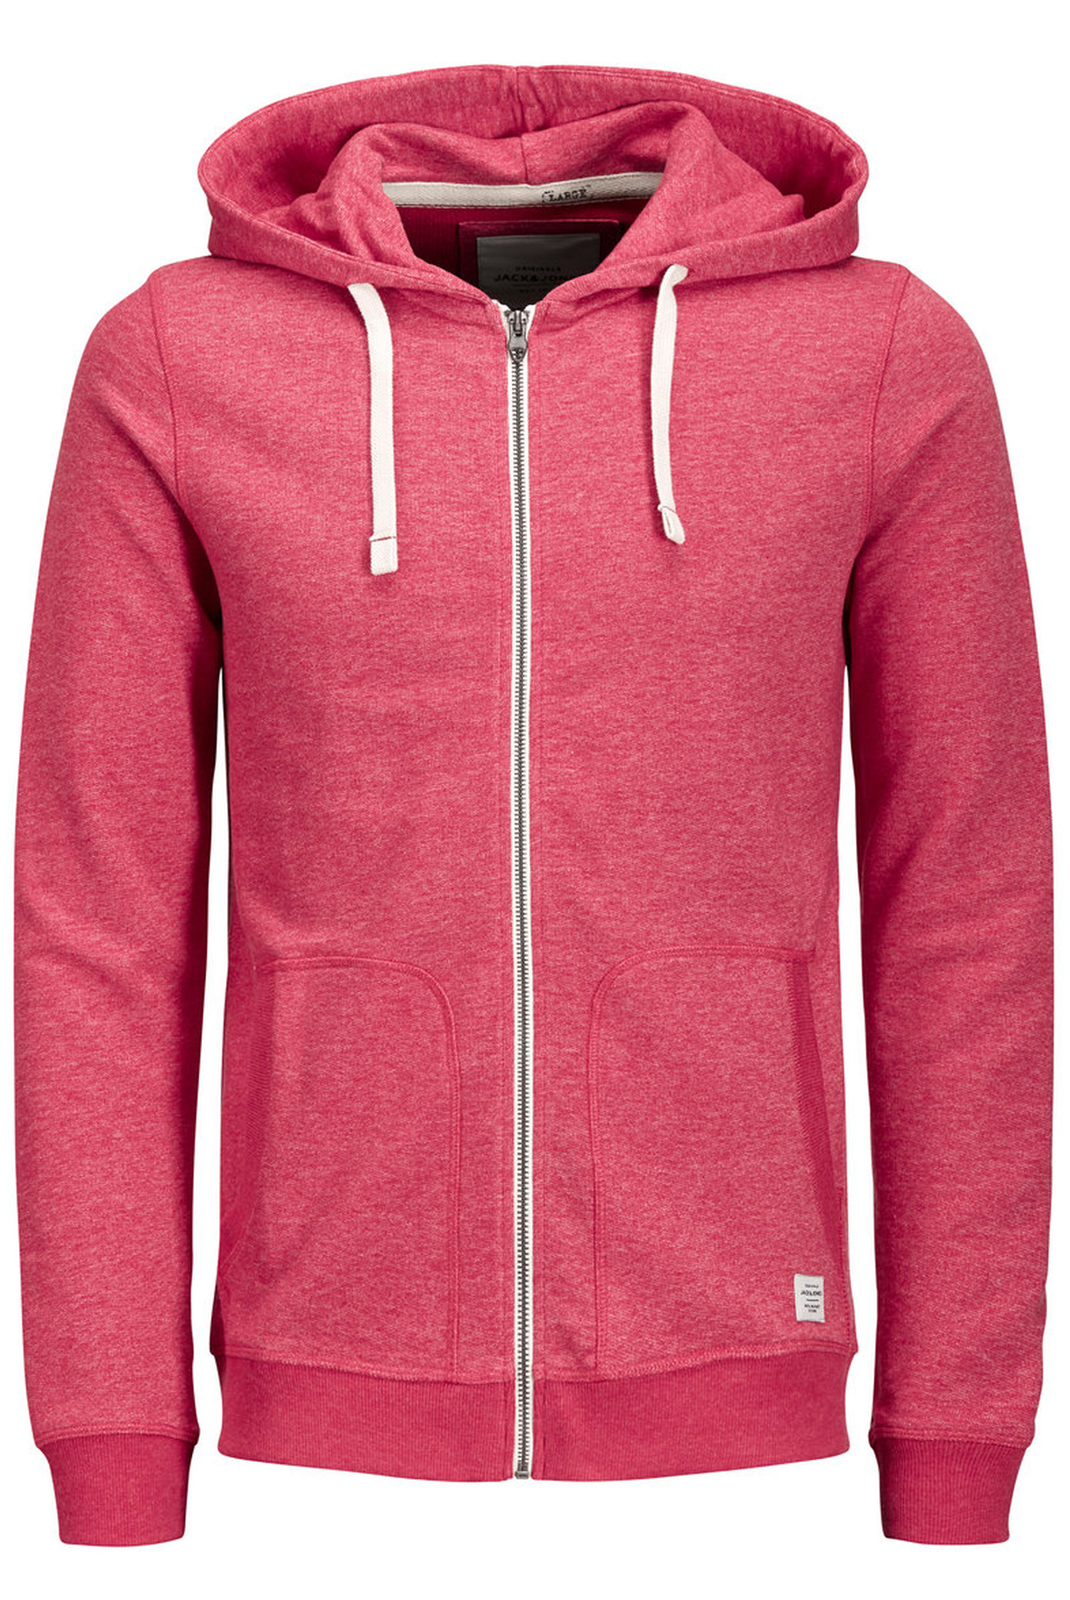 Vestes zippées  Jack & Jones RECYCLE SWEAT ZIP HOOD NOOS SCARLET